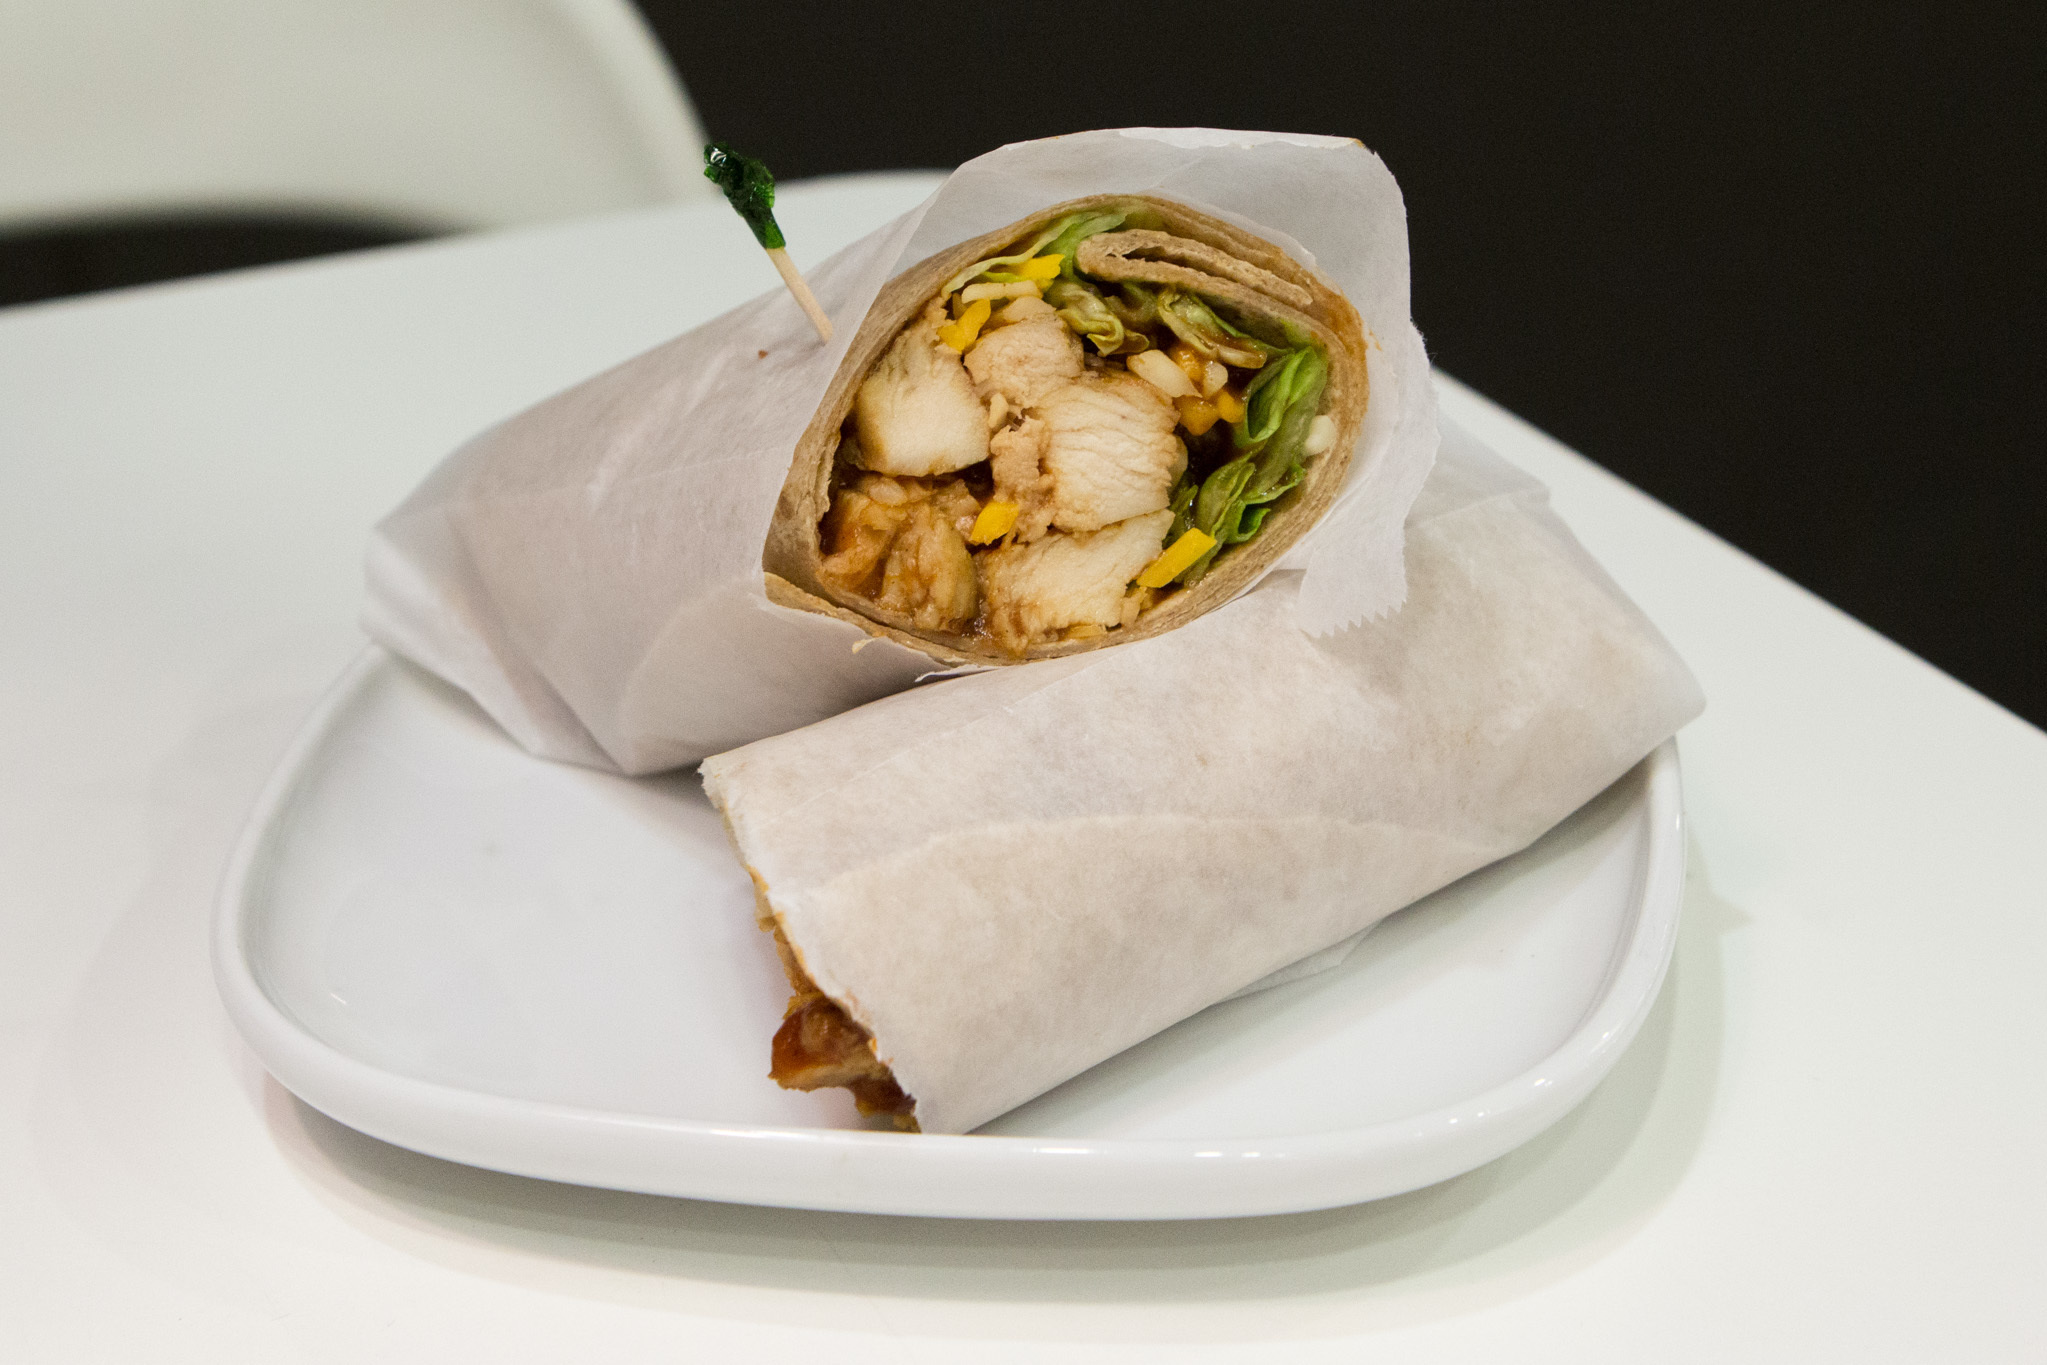 BBQ Chicken Wrap at IKEA Burbank